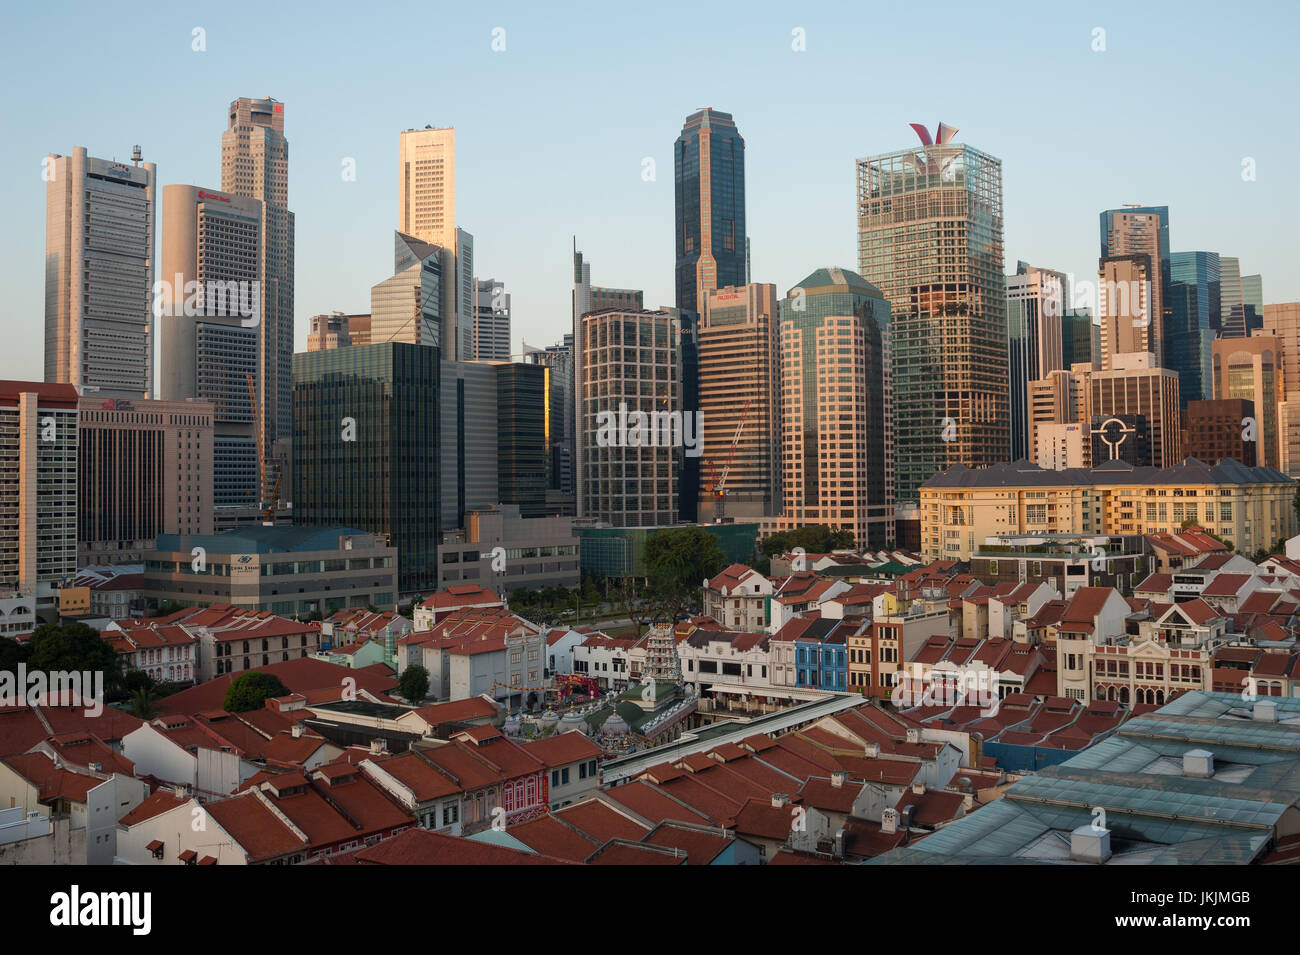 23.07.2017, Singapore, Republic of Singapore, Asia - A view of traditional shop houses in Singapore's Chinatown - Stock Image